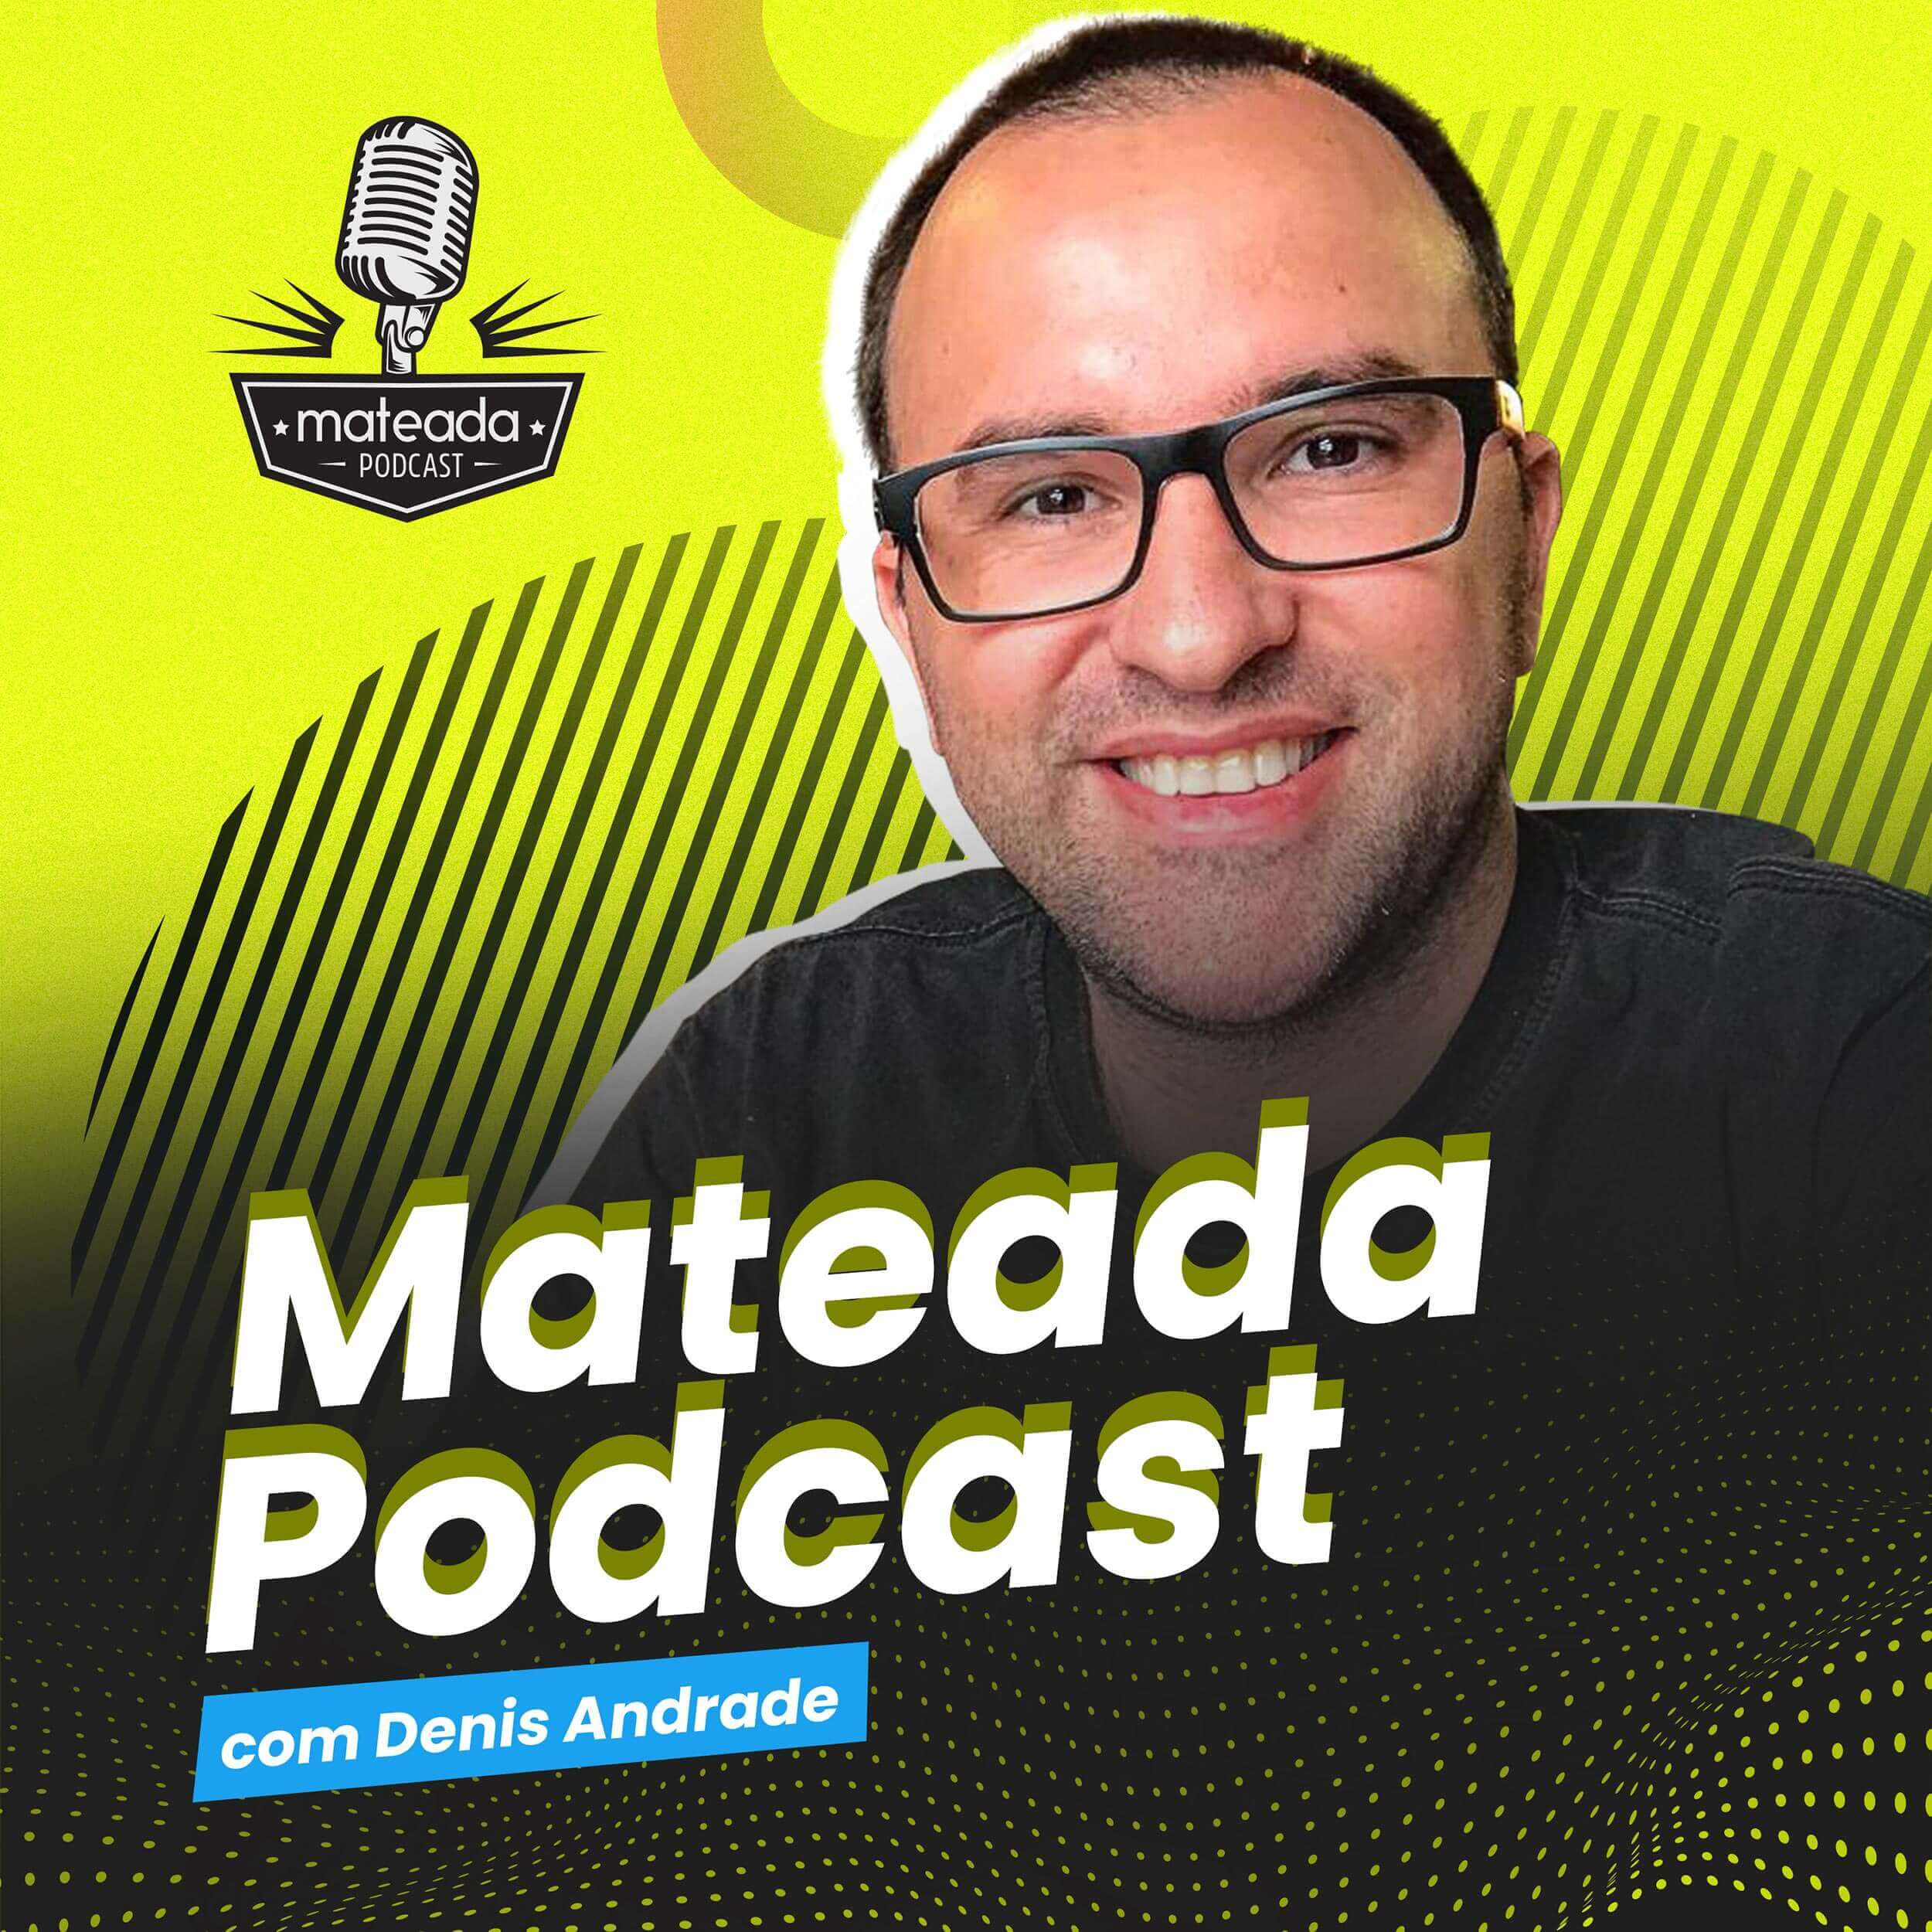 Marketing Digital | Mateada Podcast